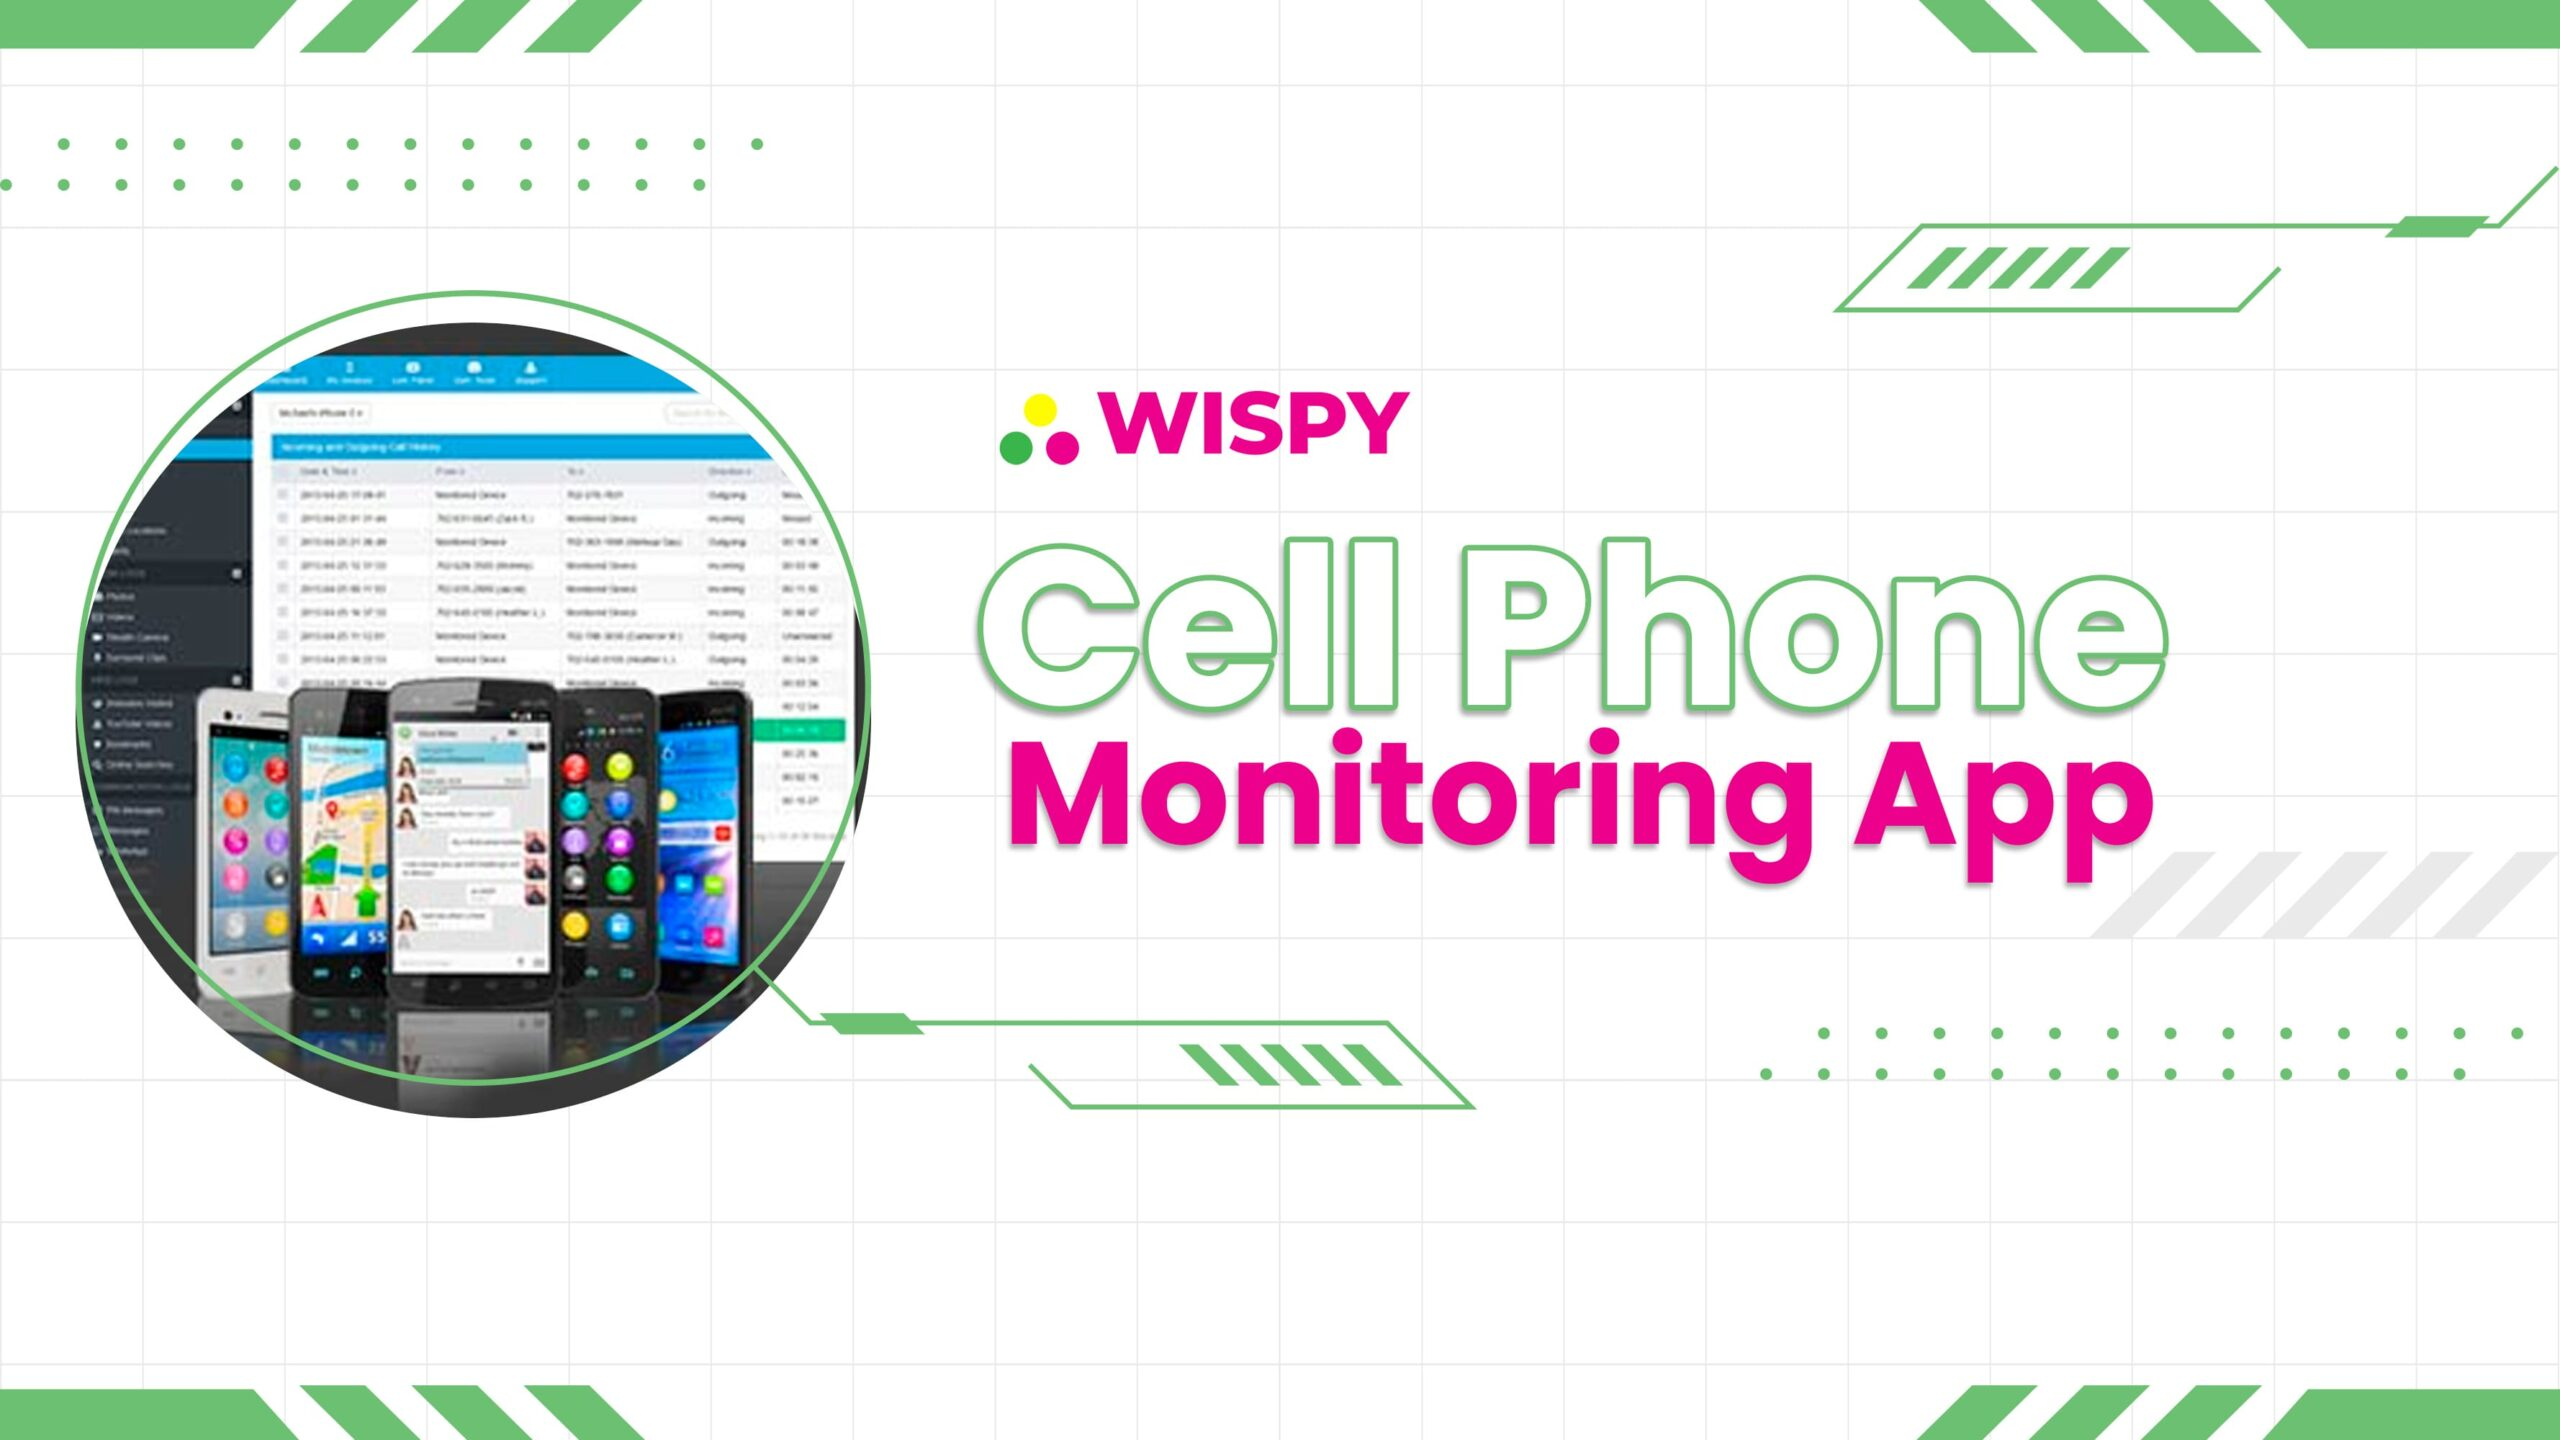 TheWiSpy Cell Phone Monitoring